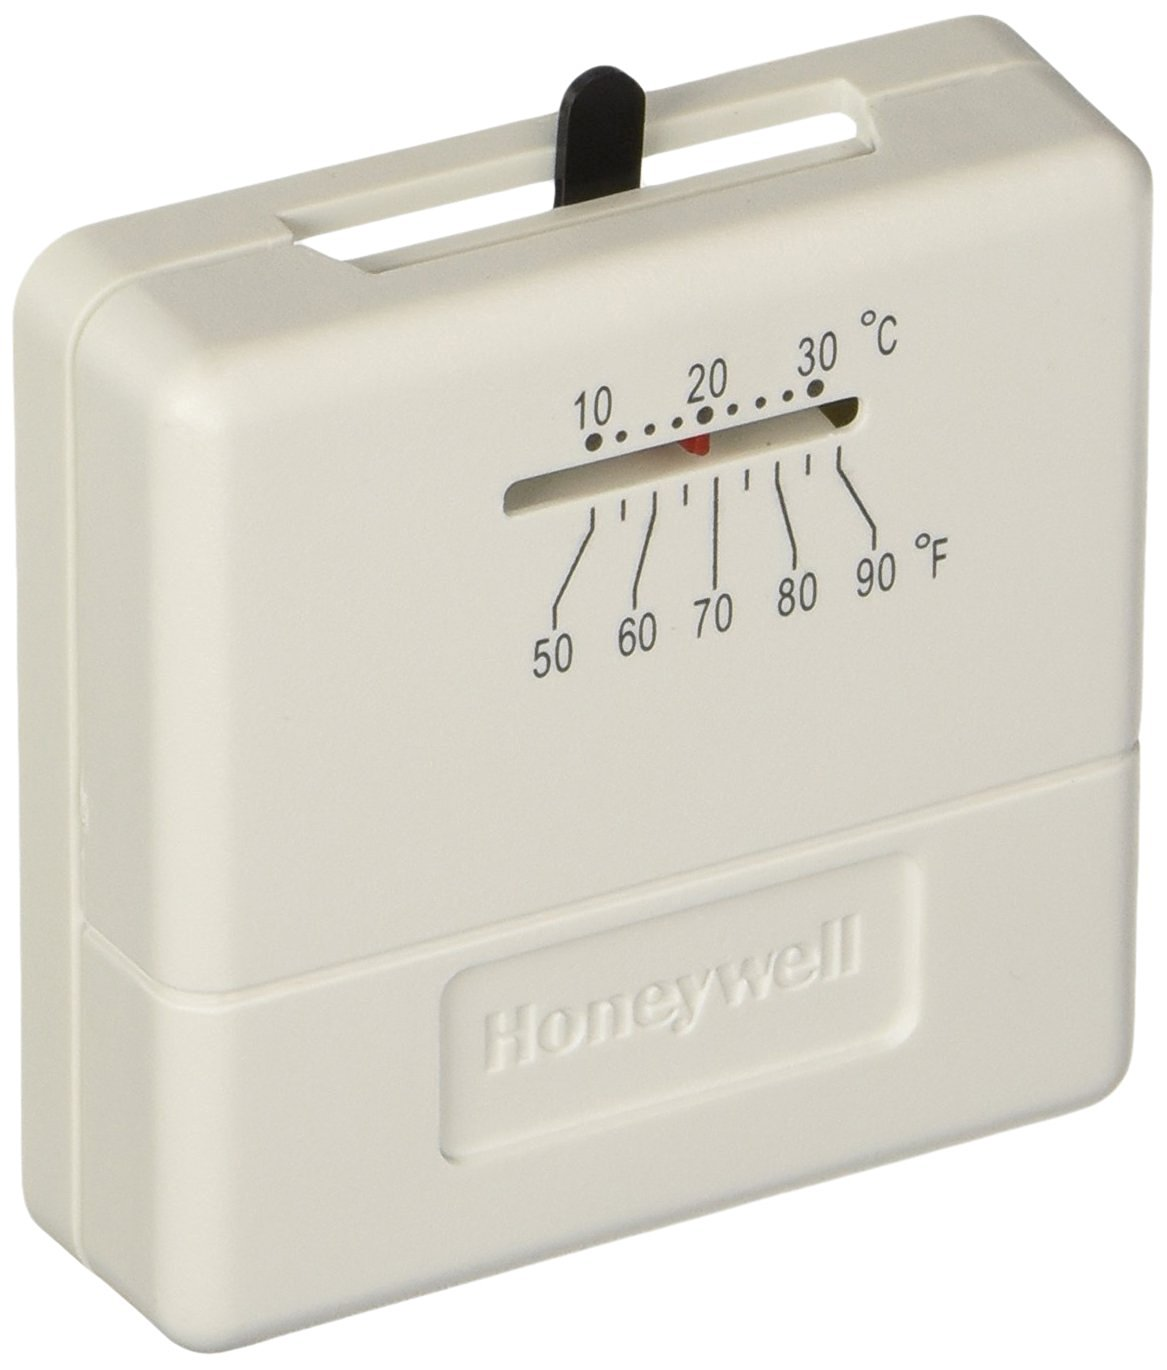 Cheap thermostat wiring diagram honeywell find thermostat wiring get quotations honeywell t812a1002 heating only thermostat asfbconference2016 Image collections